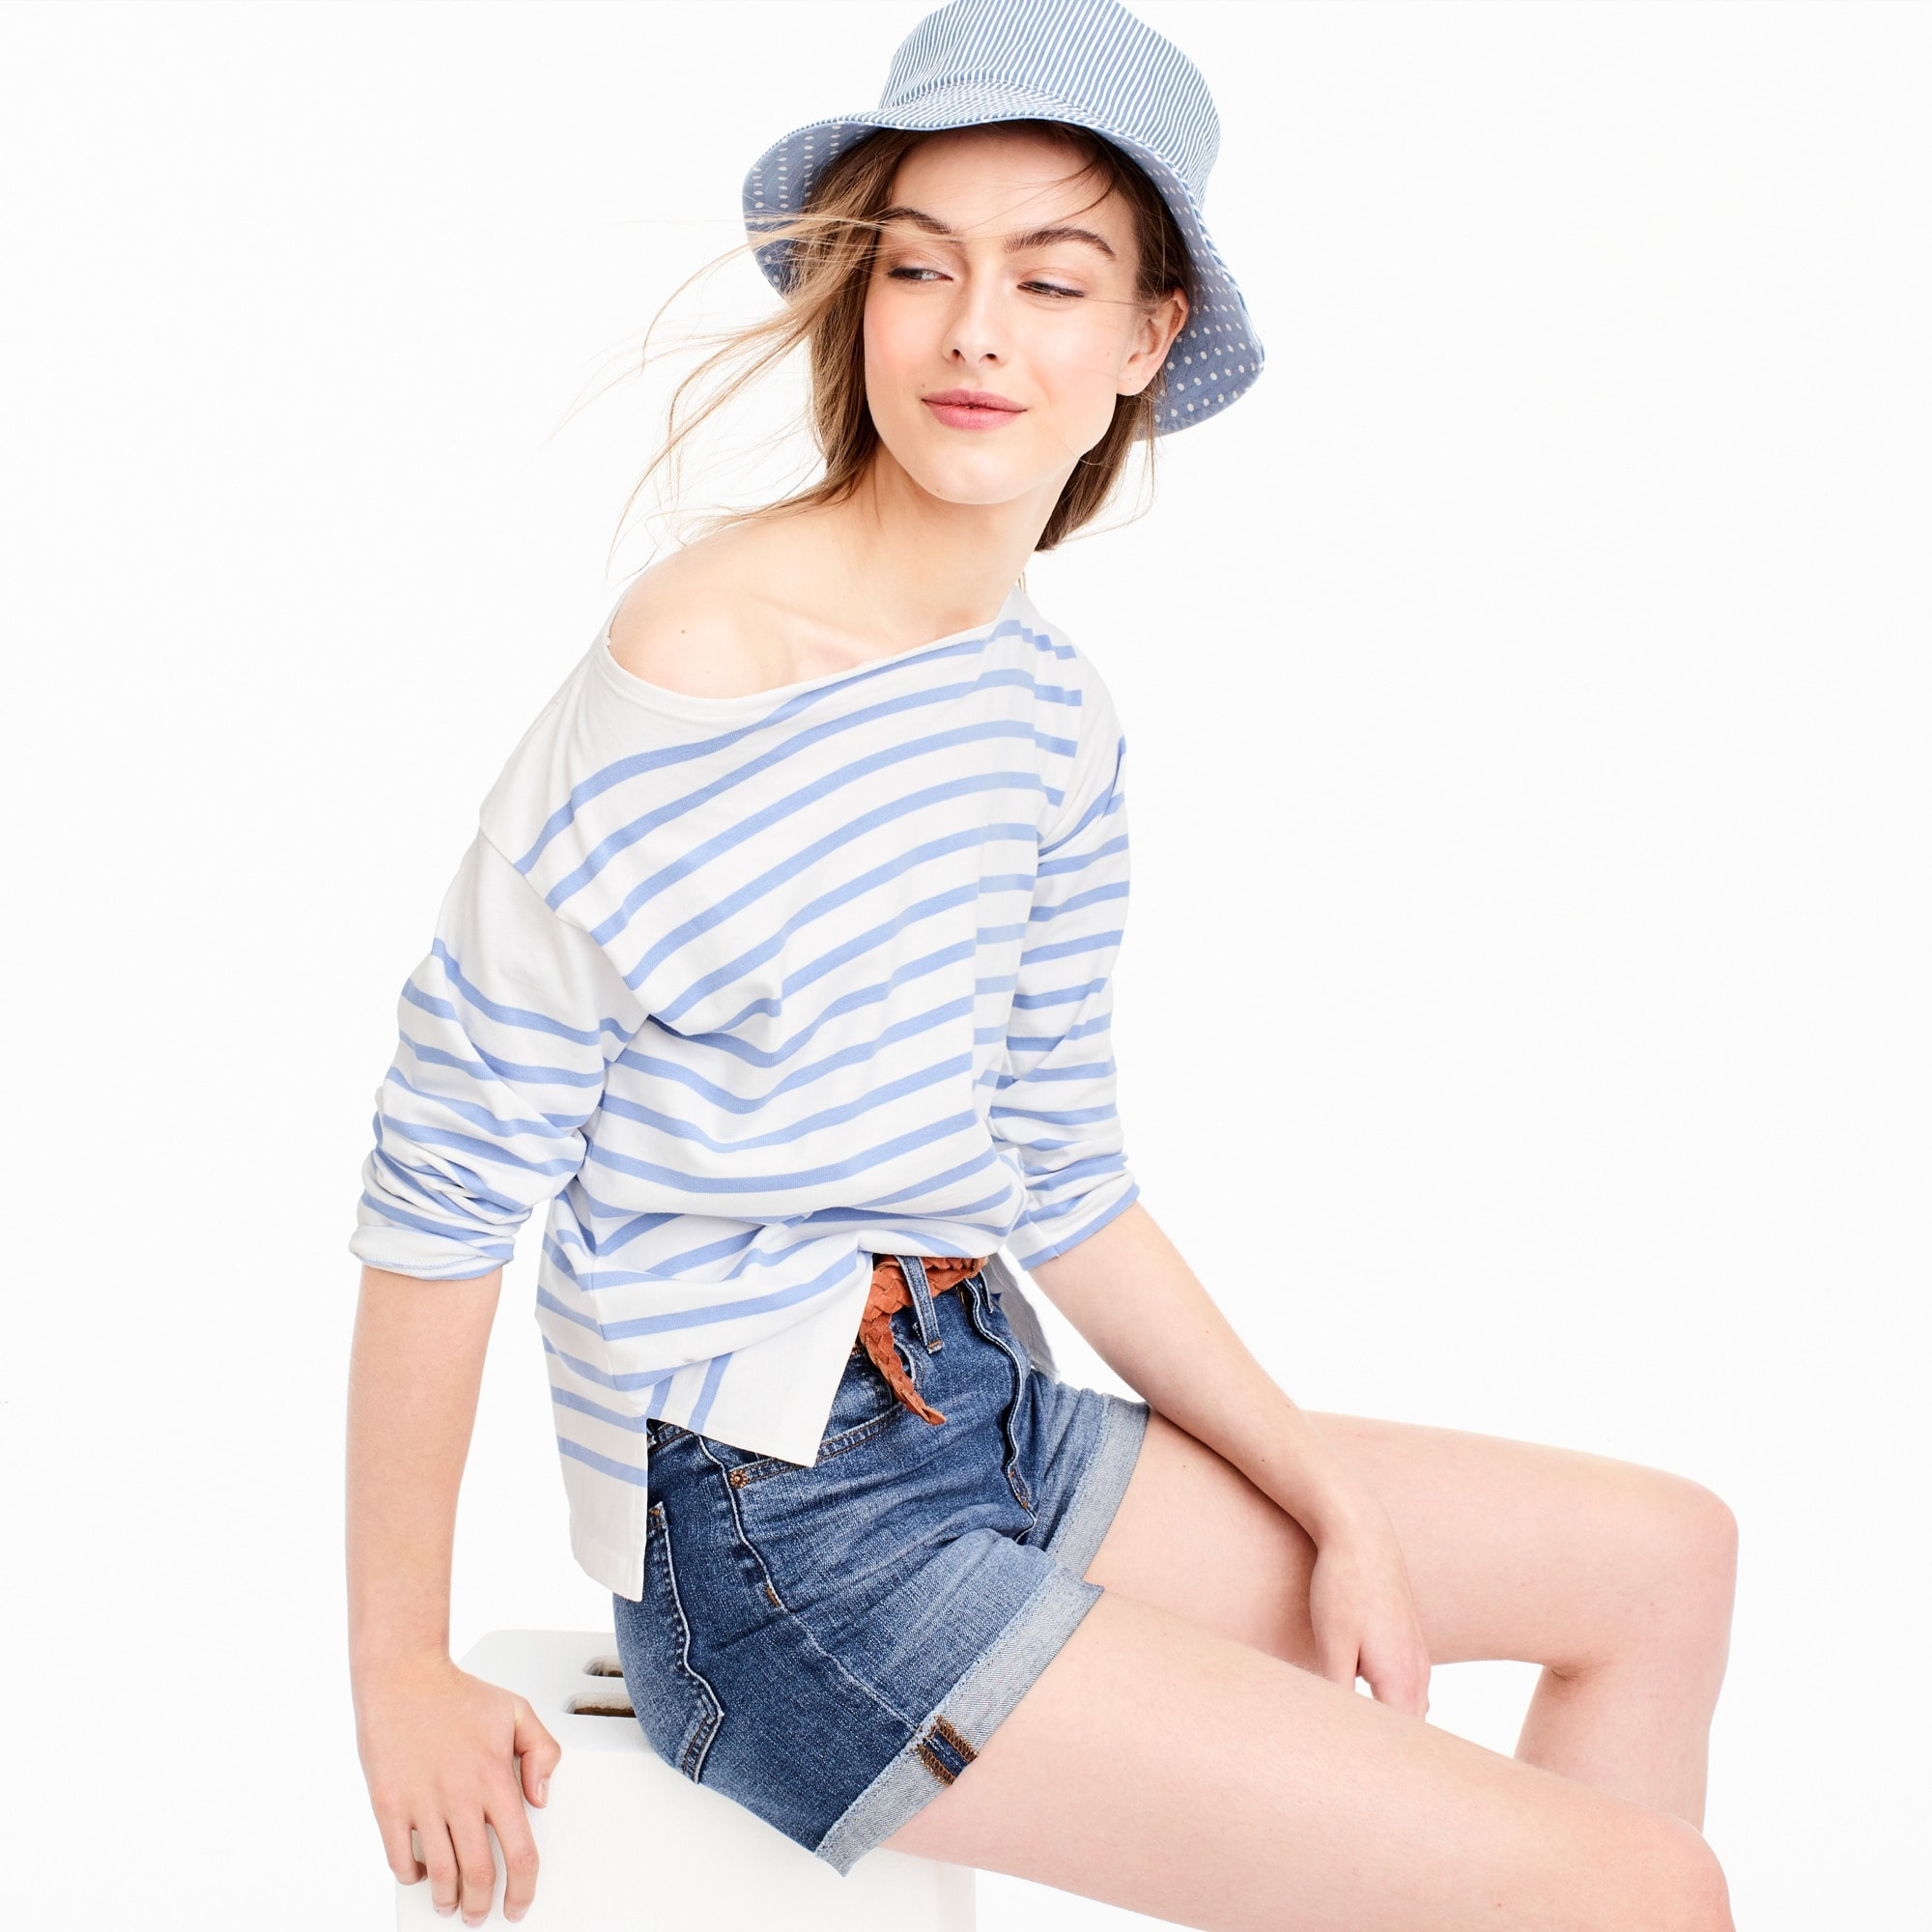 placed stripe boatneck t-shirt : women long sleeve